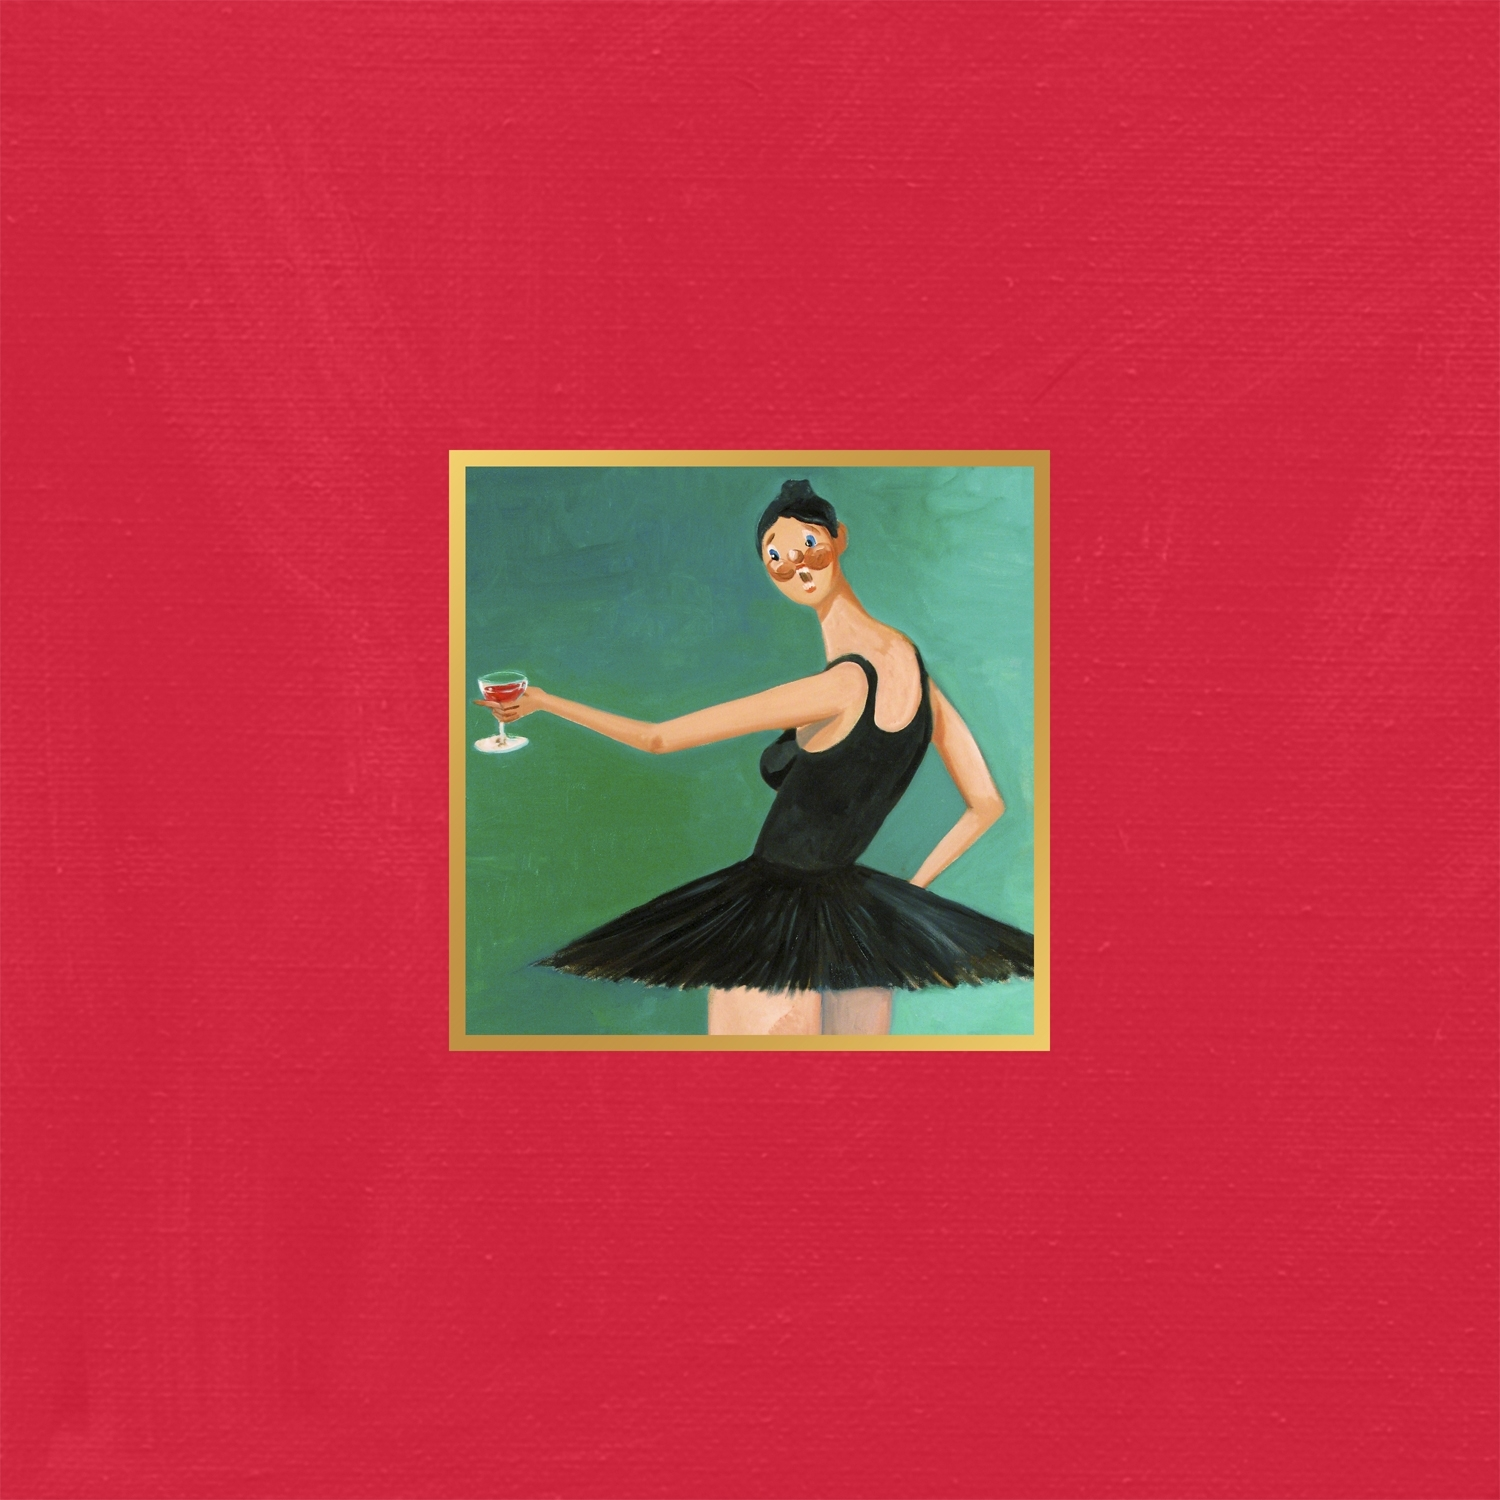 CD : Kanye West - My Beautiful Dark Twisted Fantasy (Clean Version)